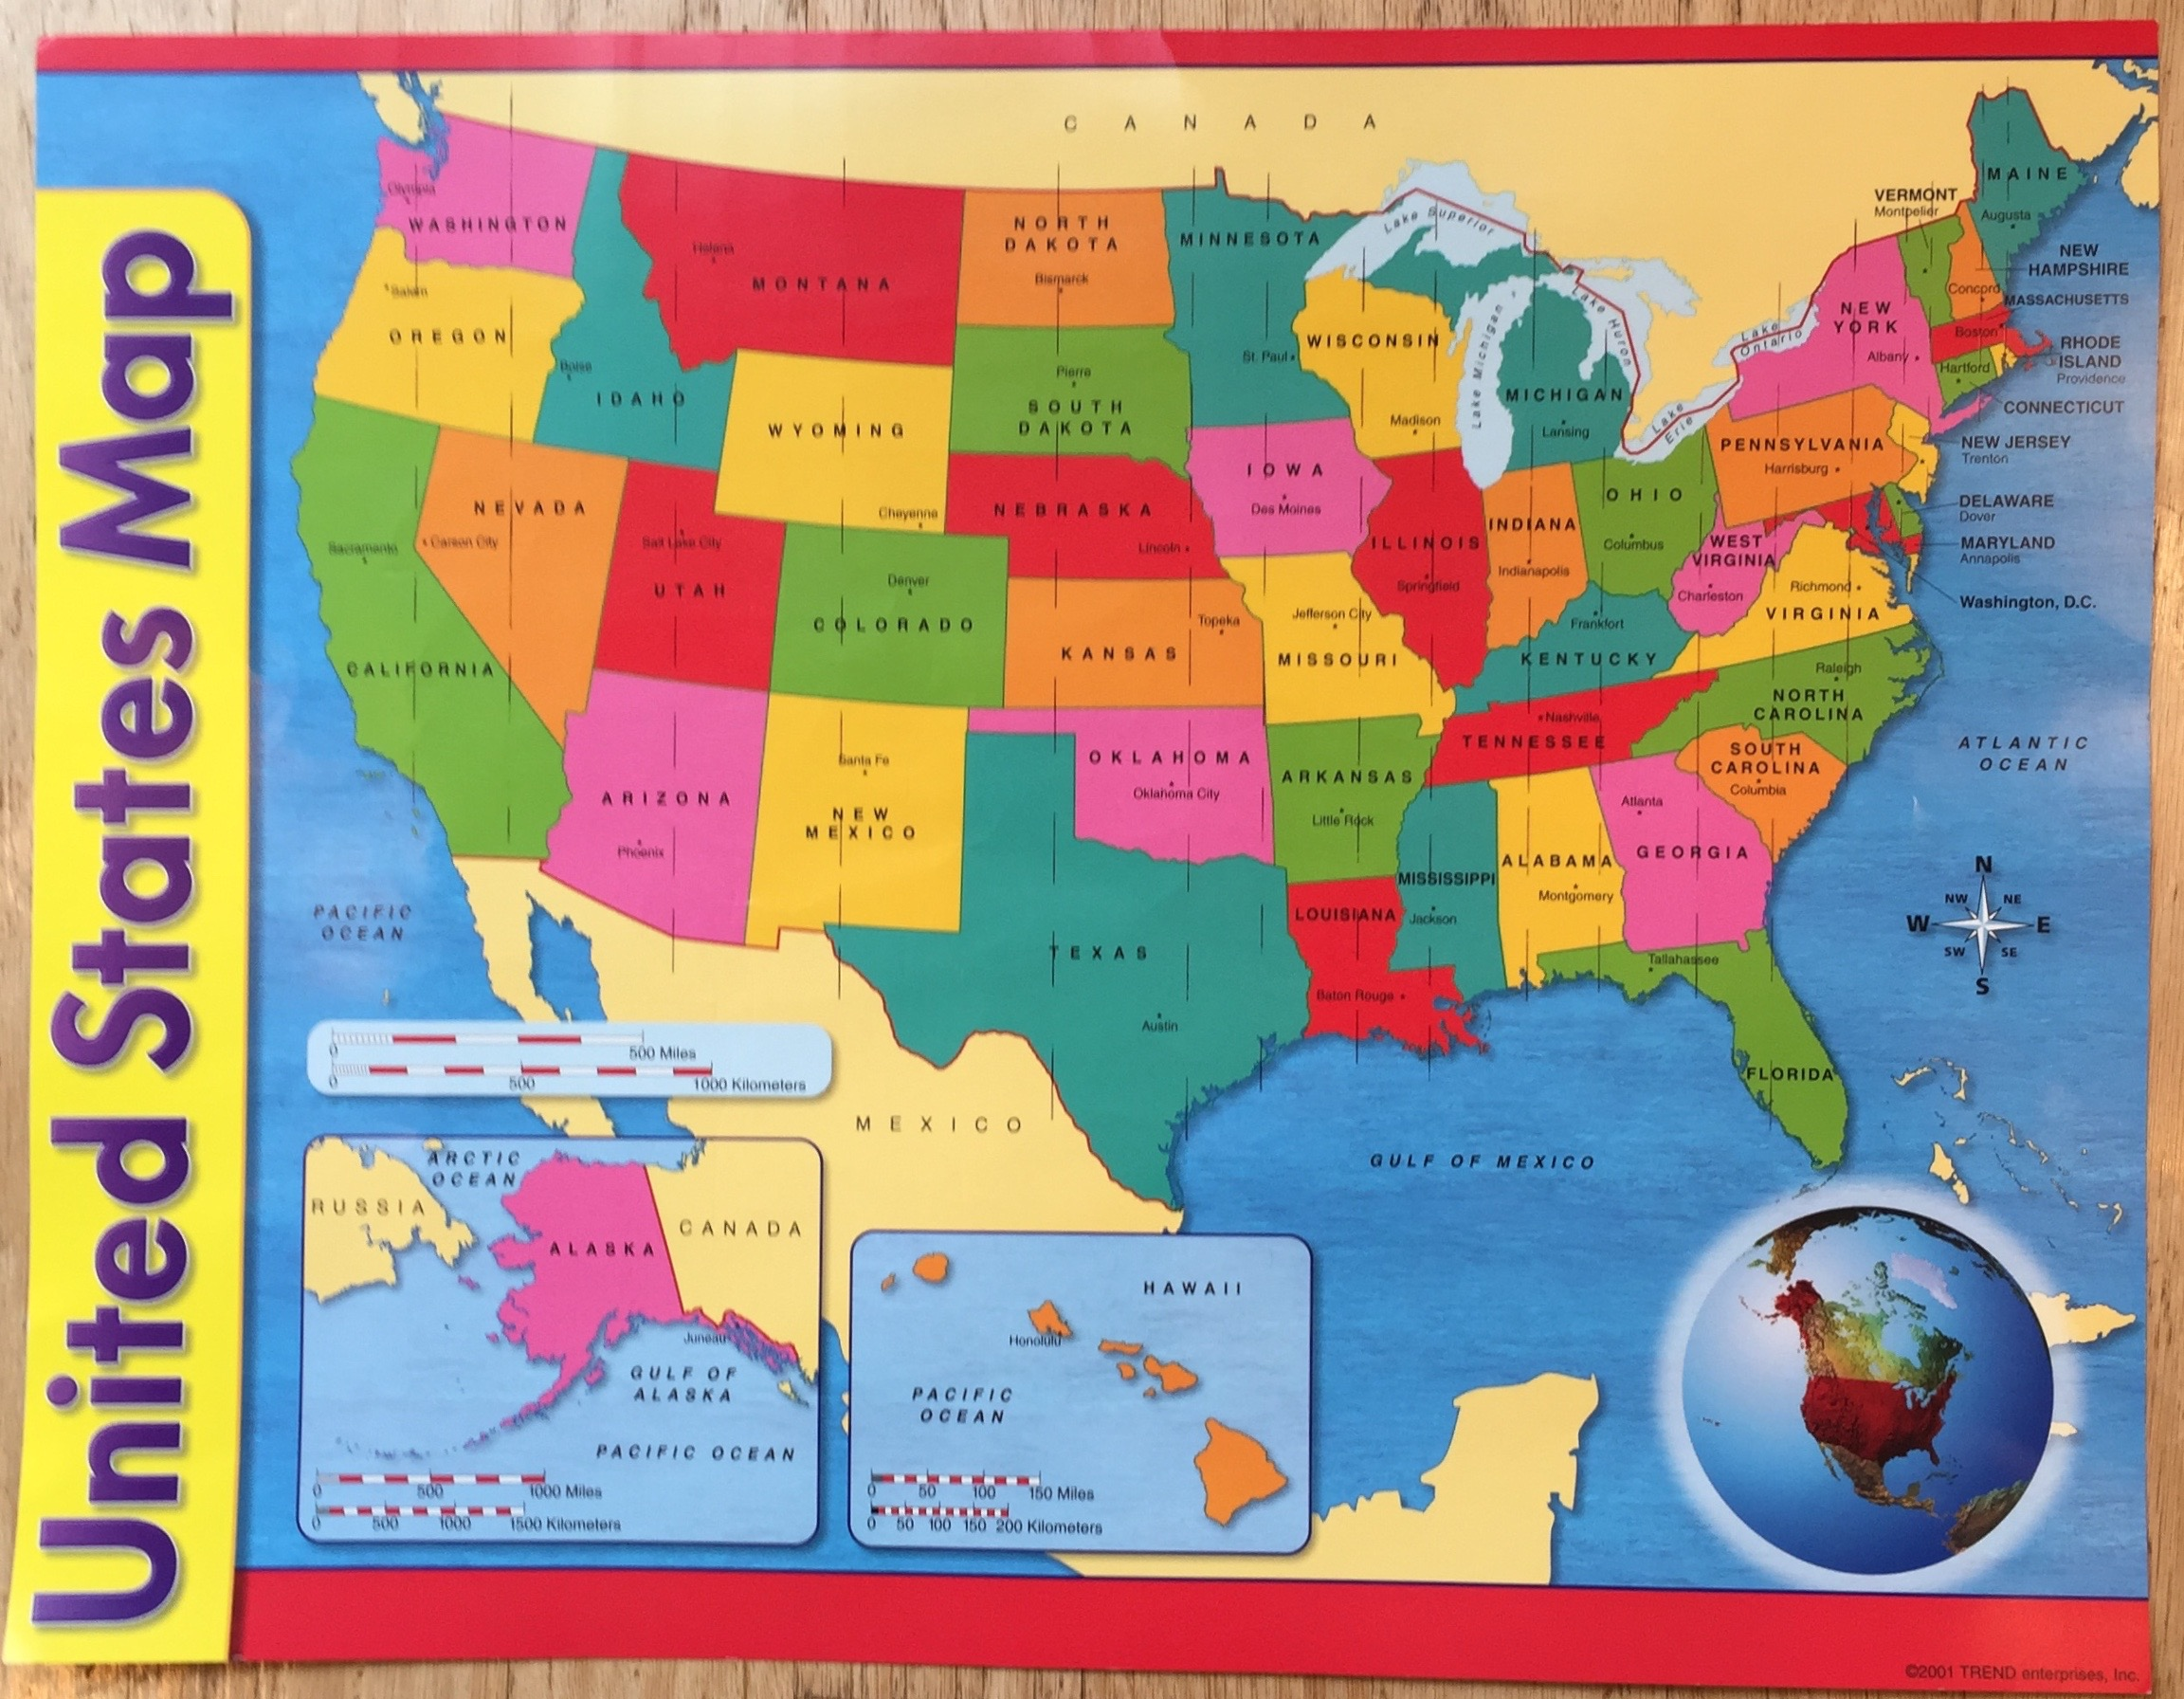 - Poster board map I used, sourced from a classroom supply store; measured 17